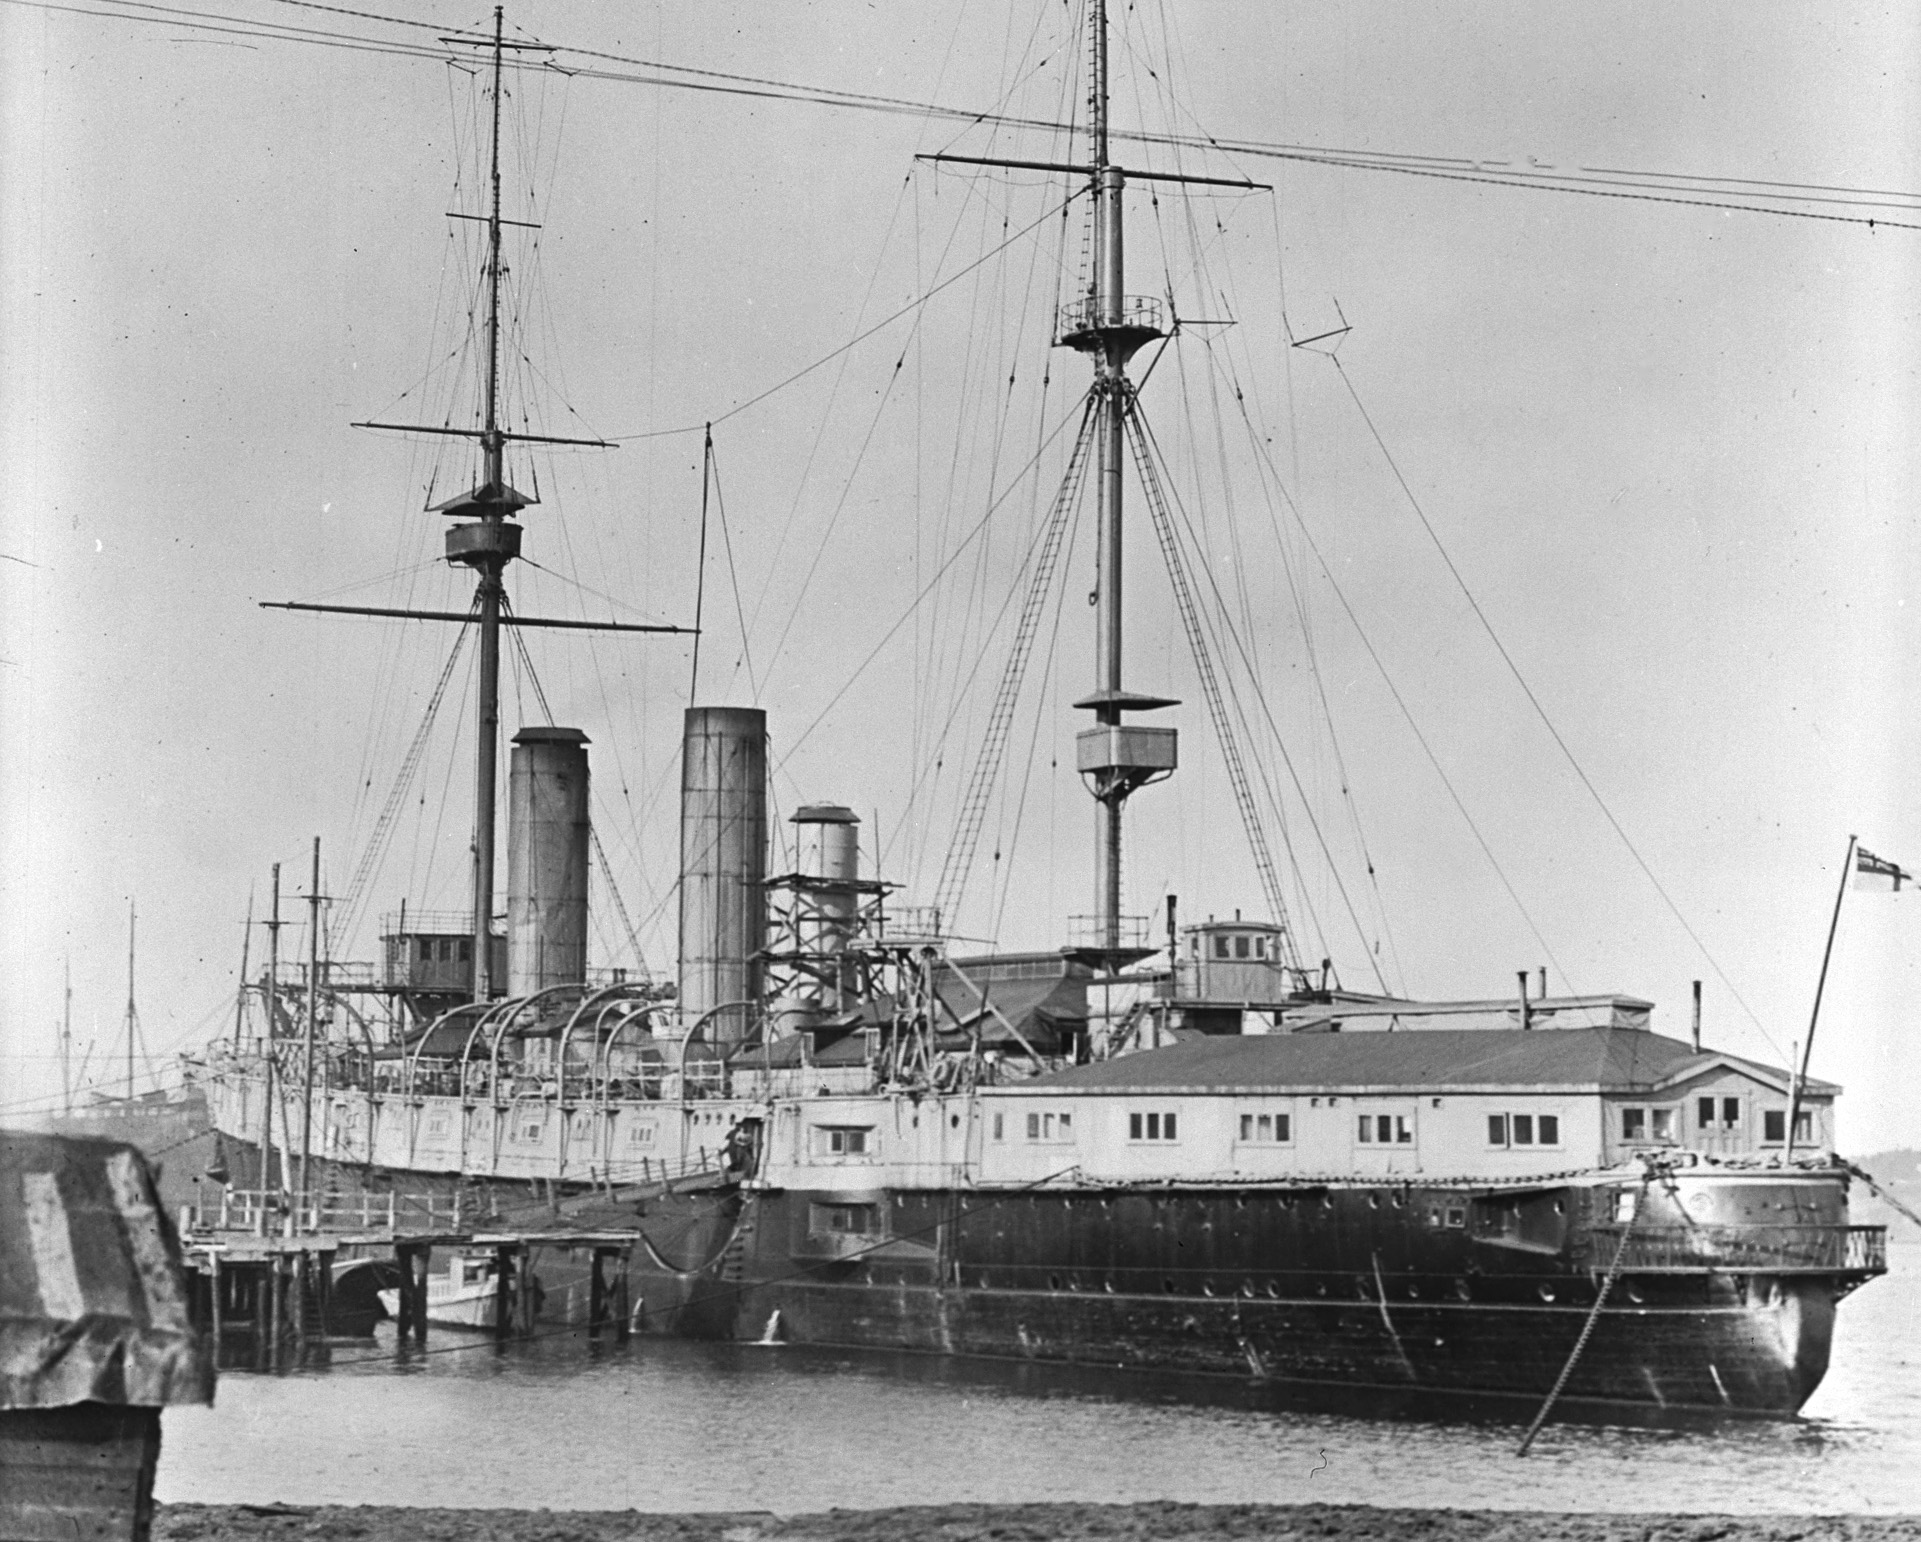 HMCS Niobe in Halifax after conversion to depot ship, c.1916.